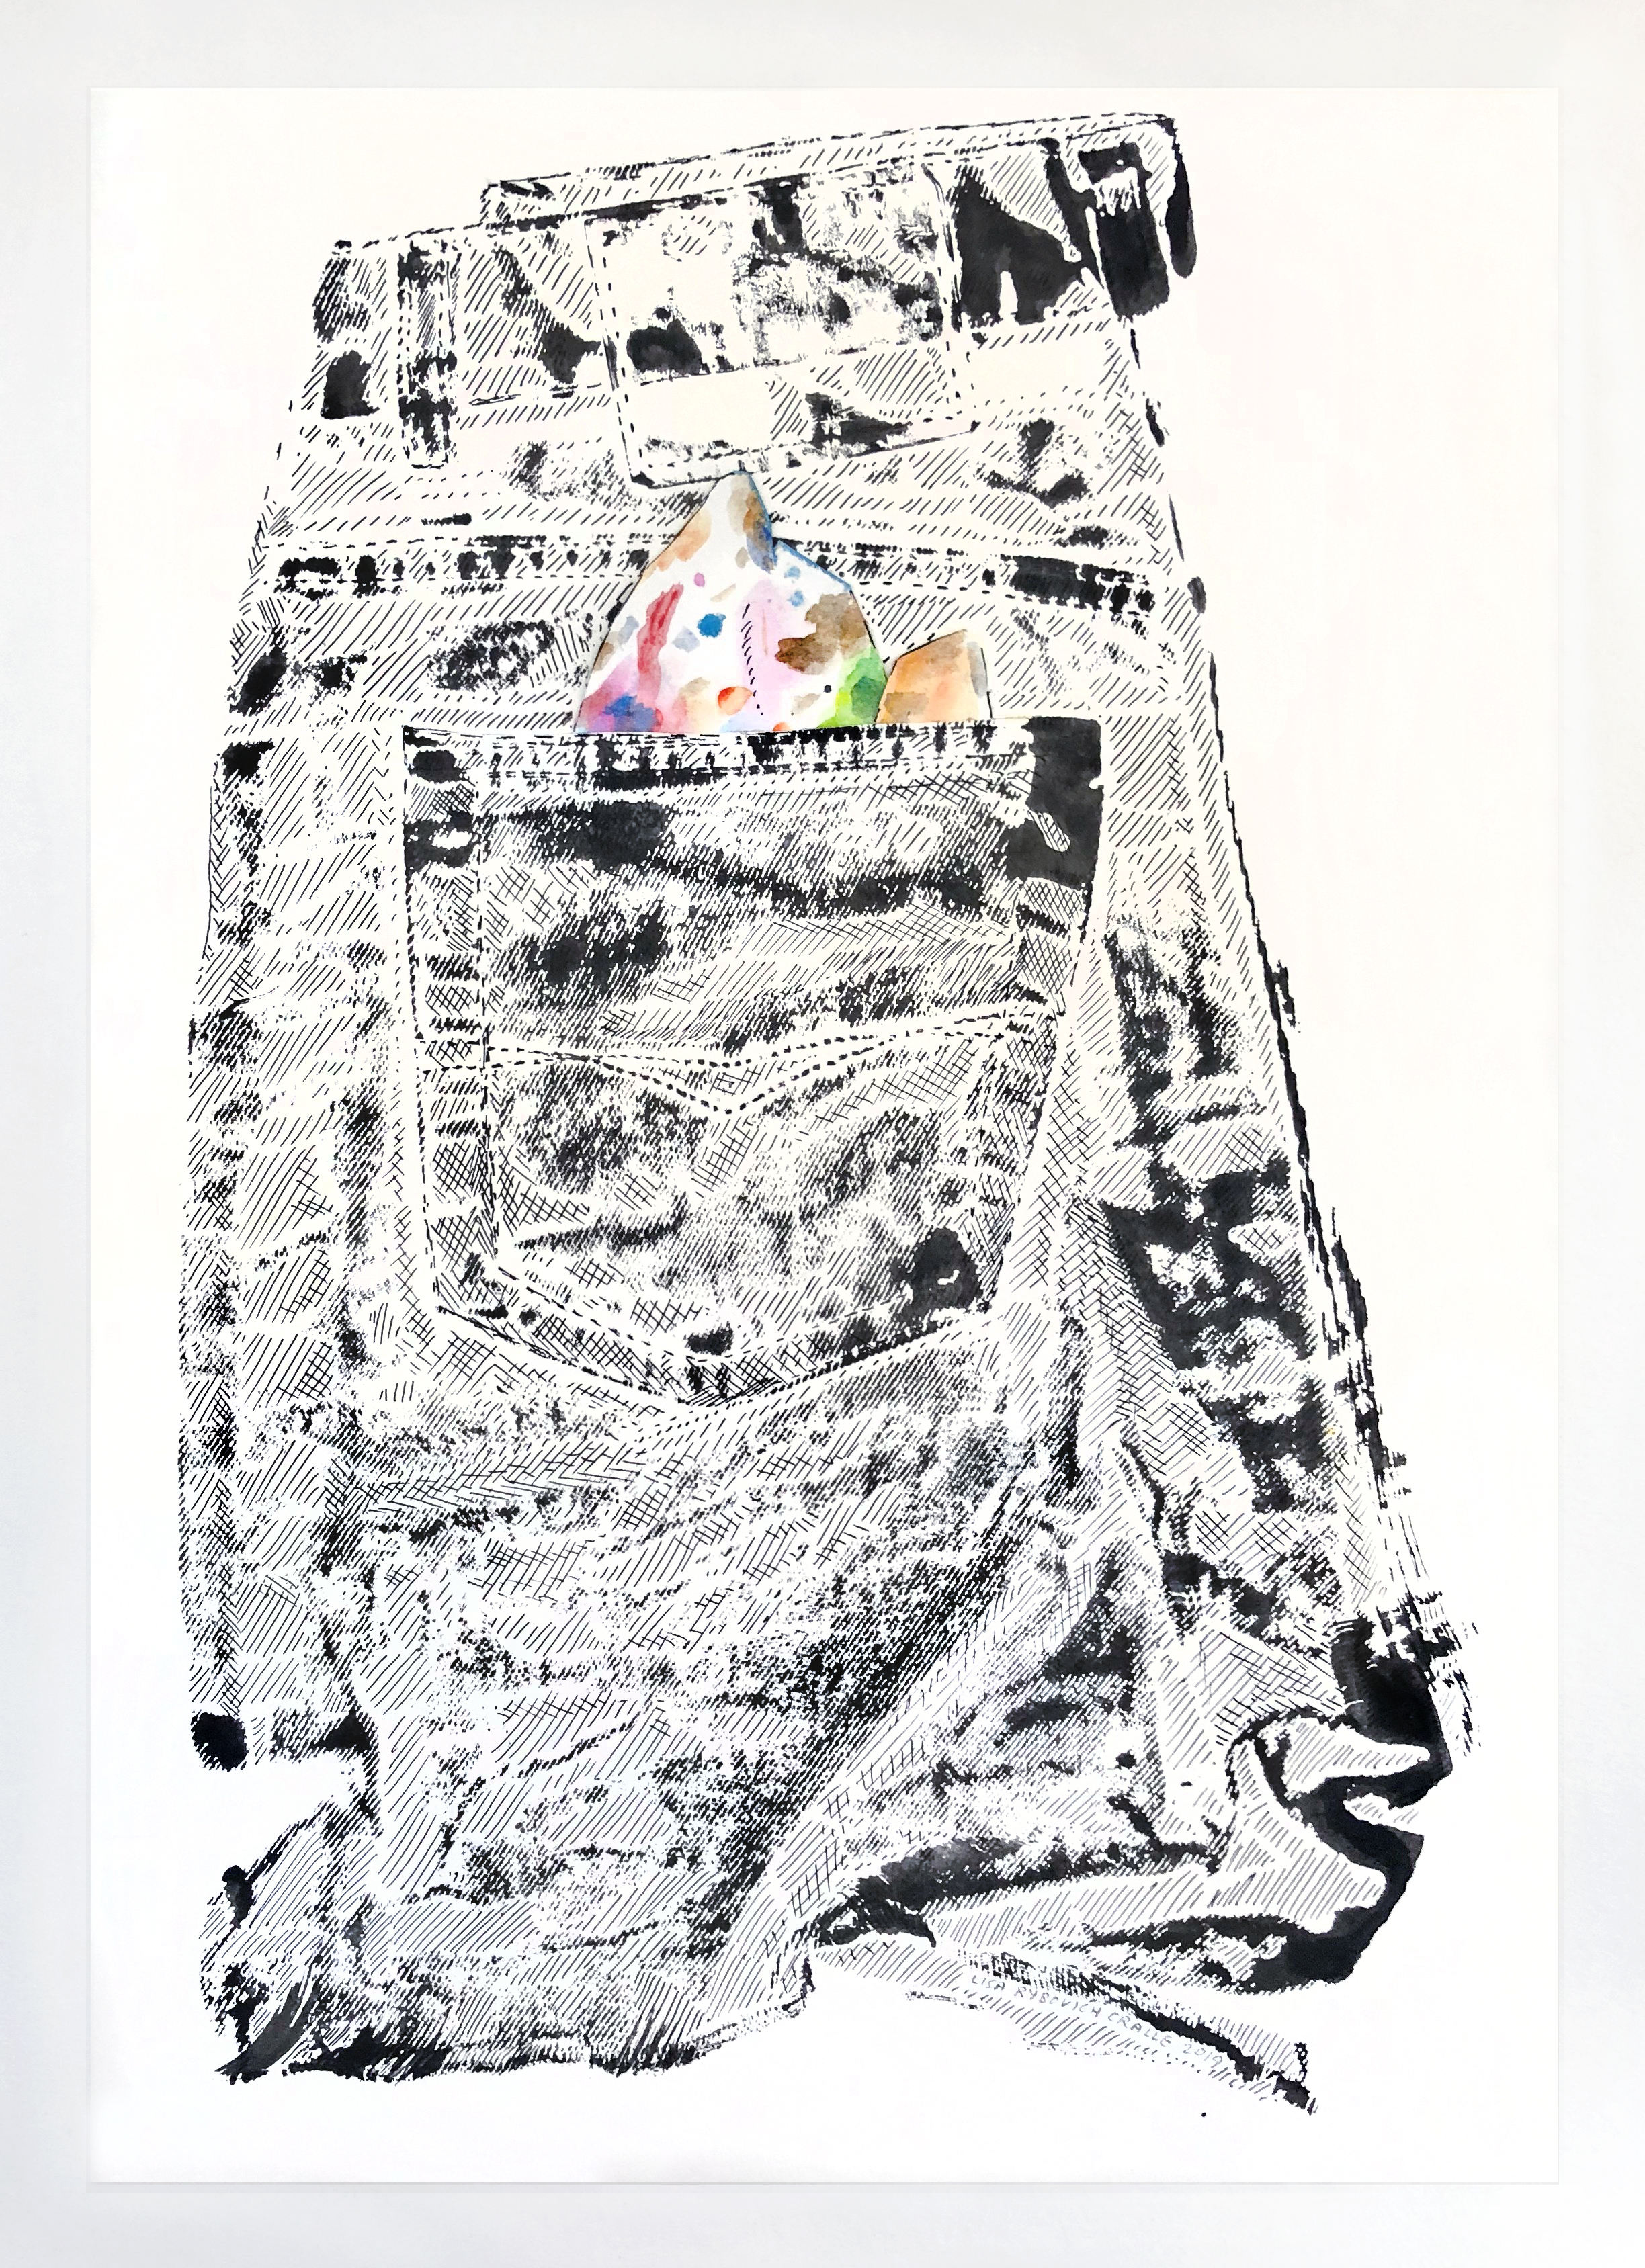 Lisa Rybovich Crallé, Pocket #4, 2019. Ink, acrylic, and collage on paper